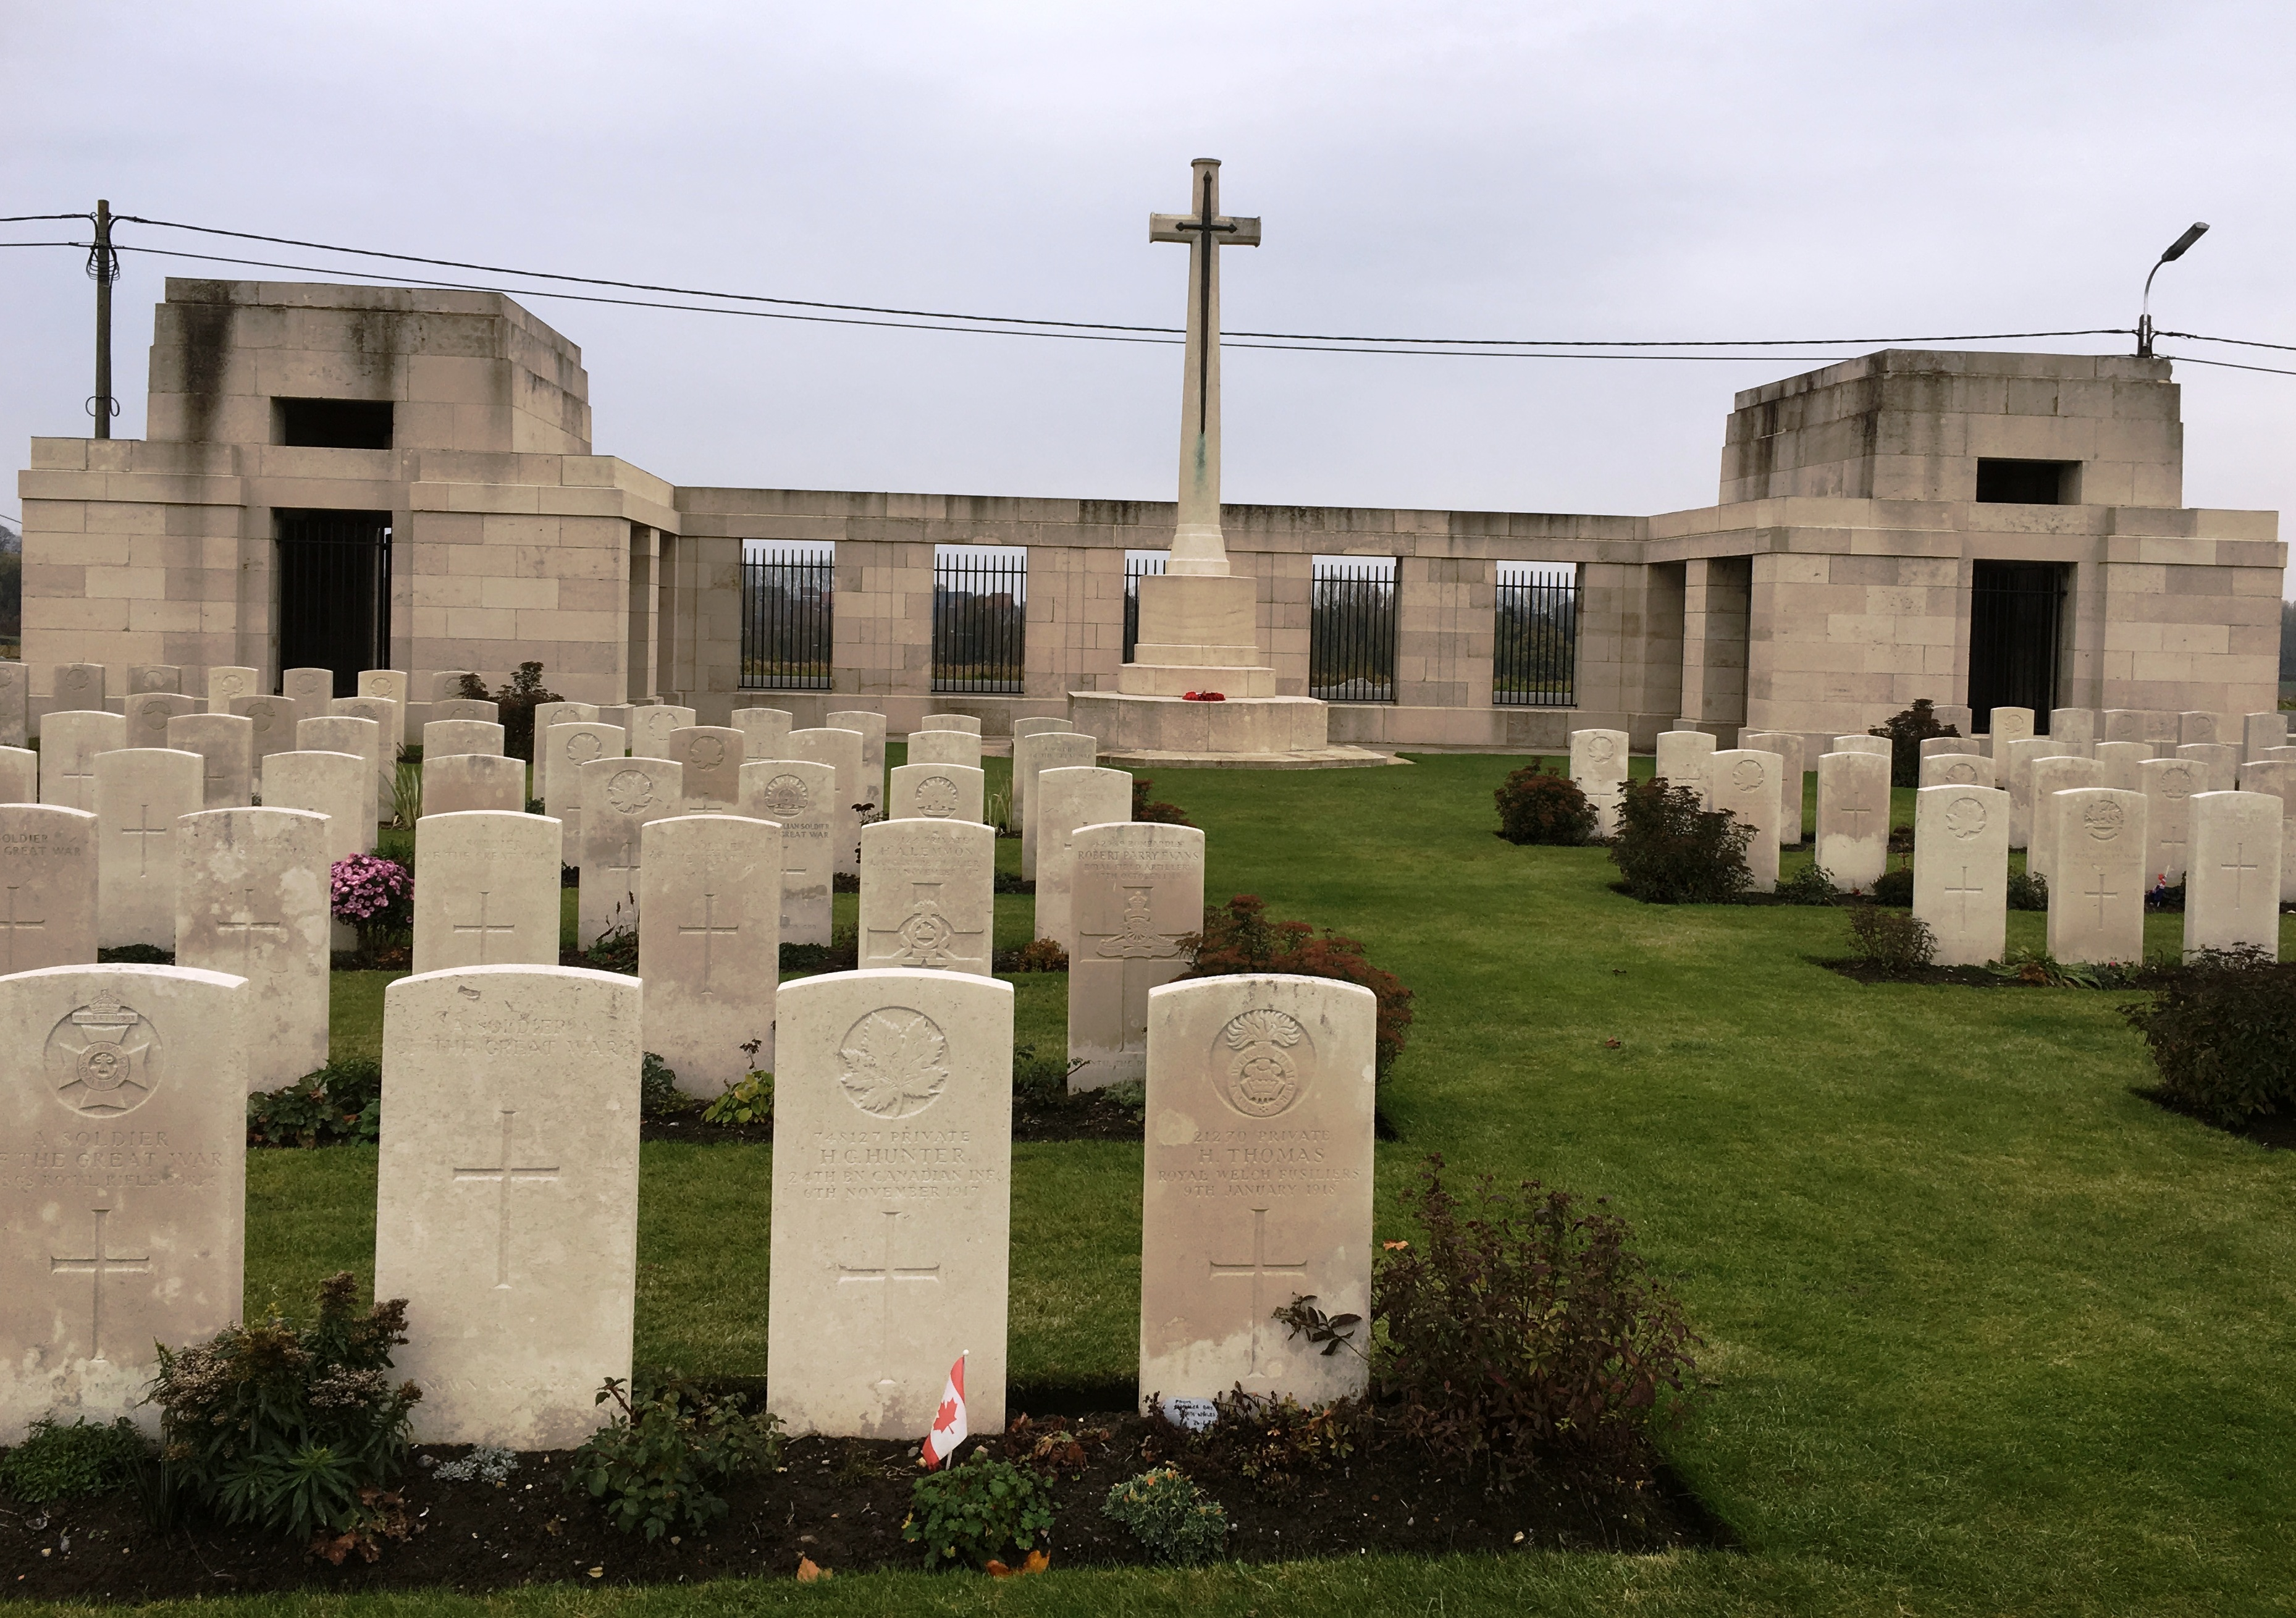 27-passchendaele-new-british-cemetery-ypres-salient-next-to-tyne-cot-cemetery-it-has-the-largest-concentration-of-canadian-dead